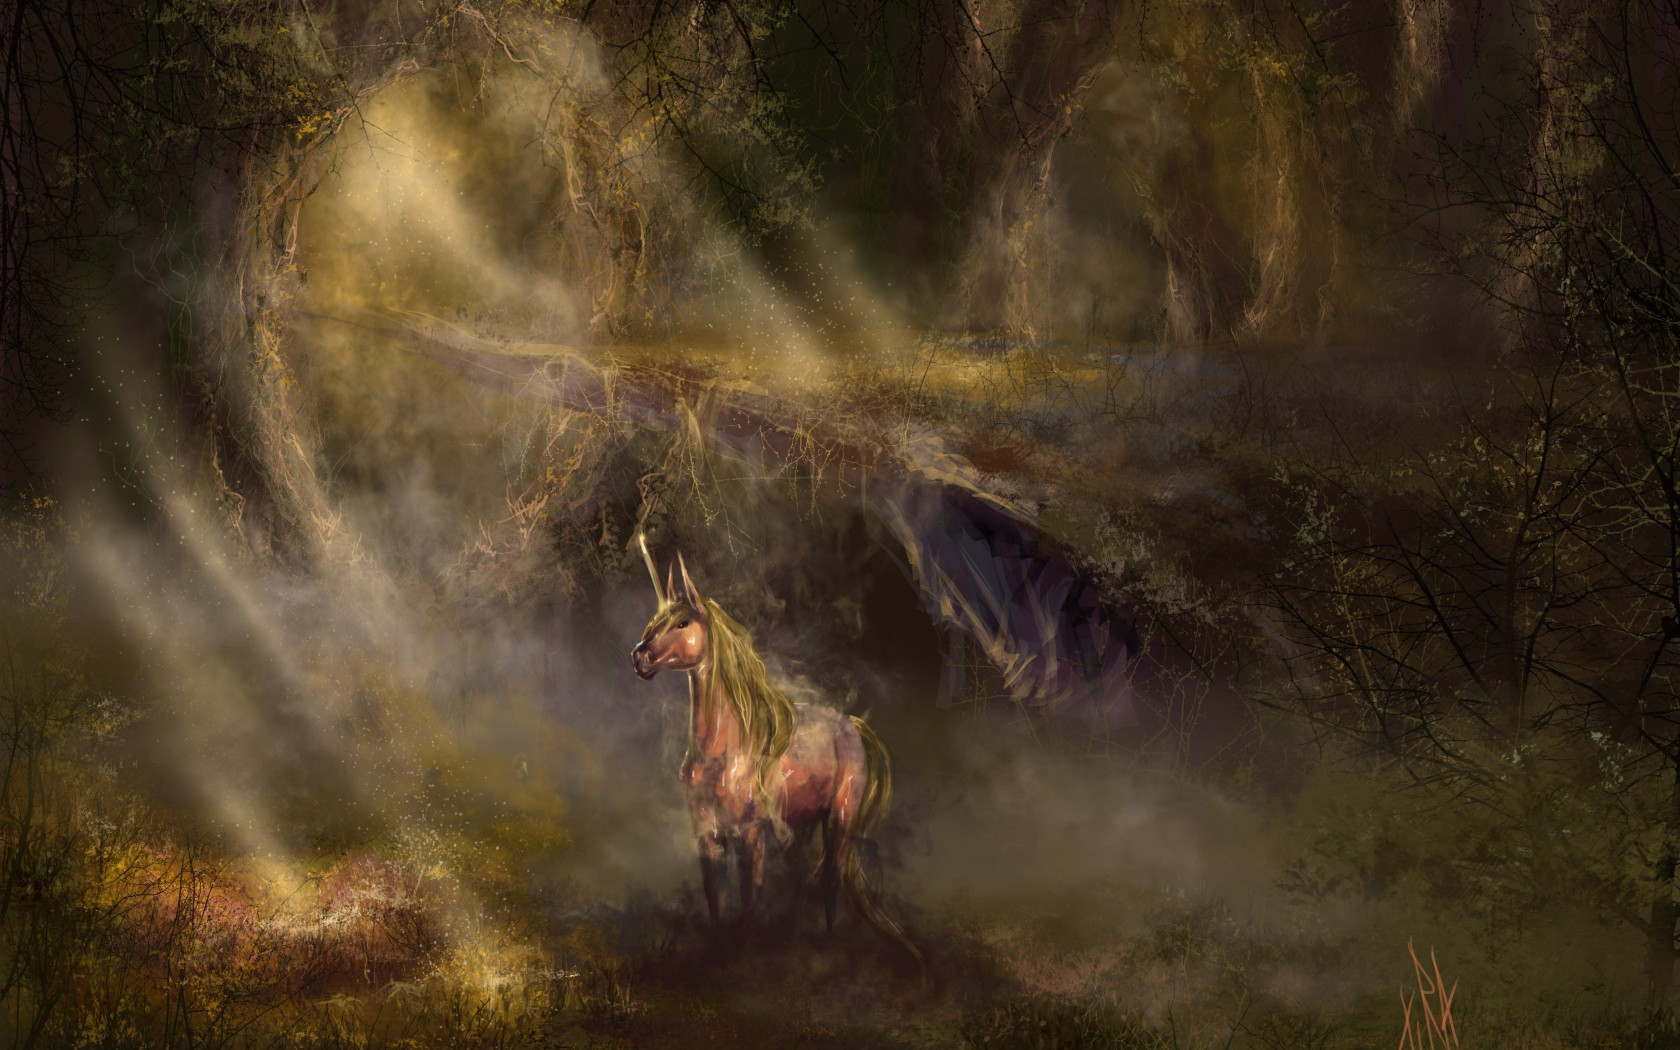 Unicorn Horse Magical Animal Autumn Forest Y J Wallpaper 1680x1050 172467 Wallpaperup